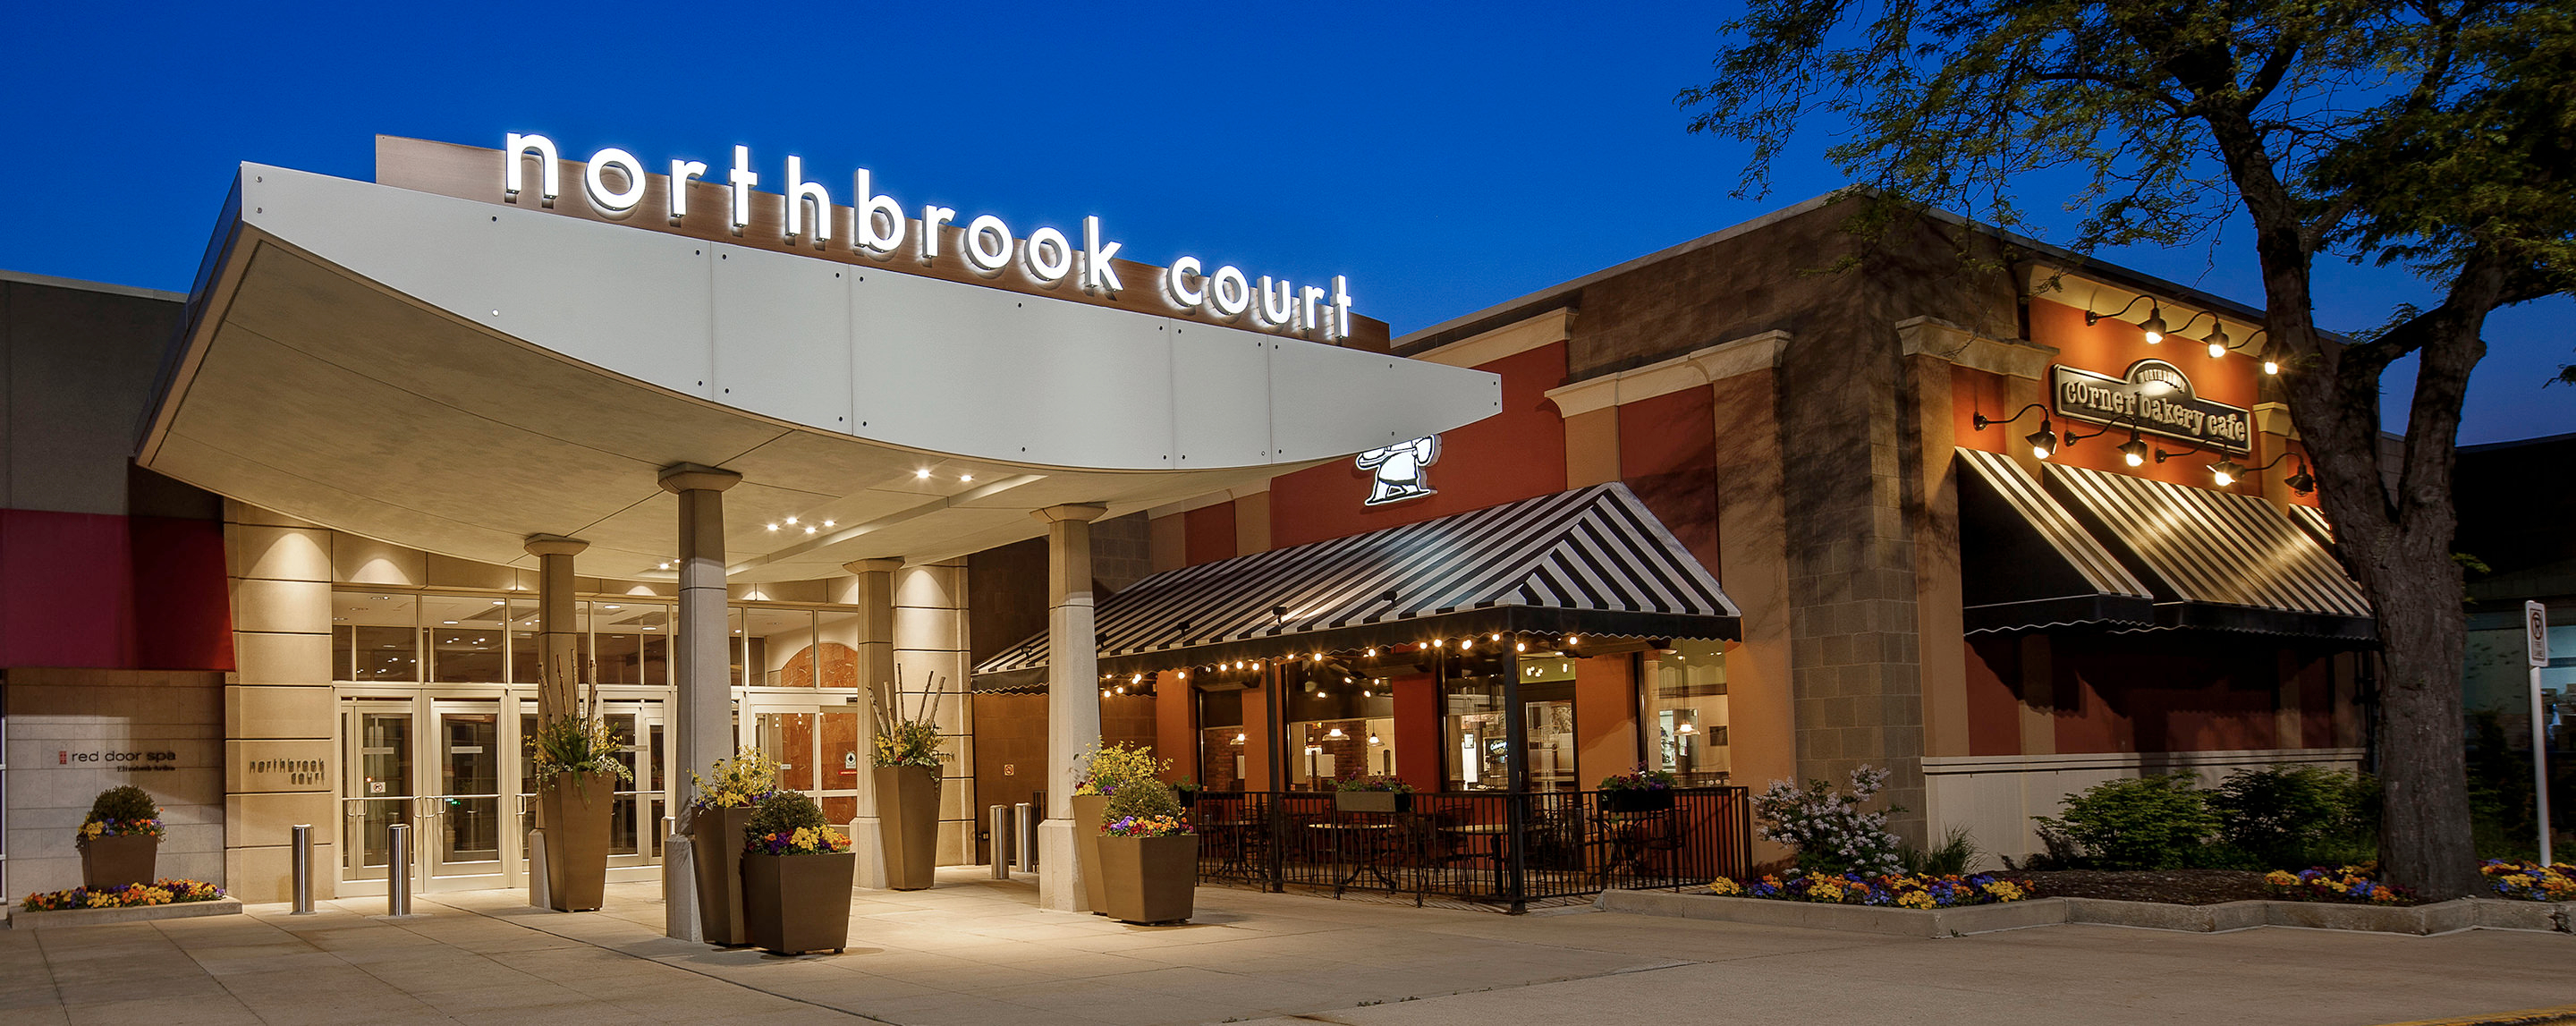 Northbrook Court 1515 Lake Cook Road Northbrook Il Shopping Centers